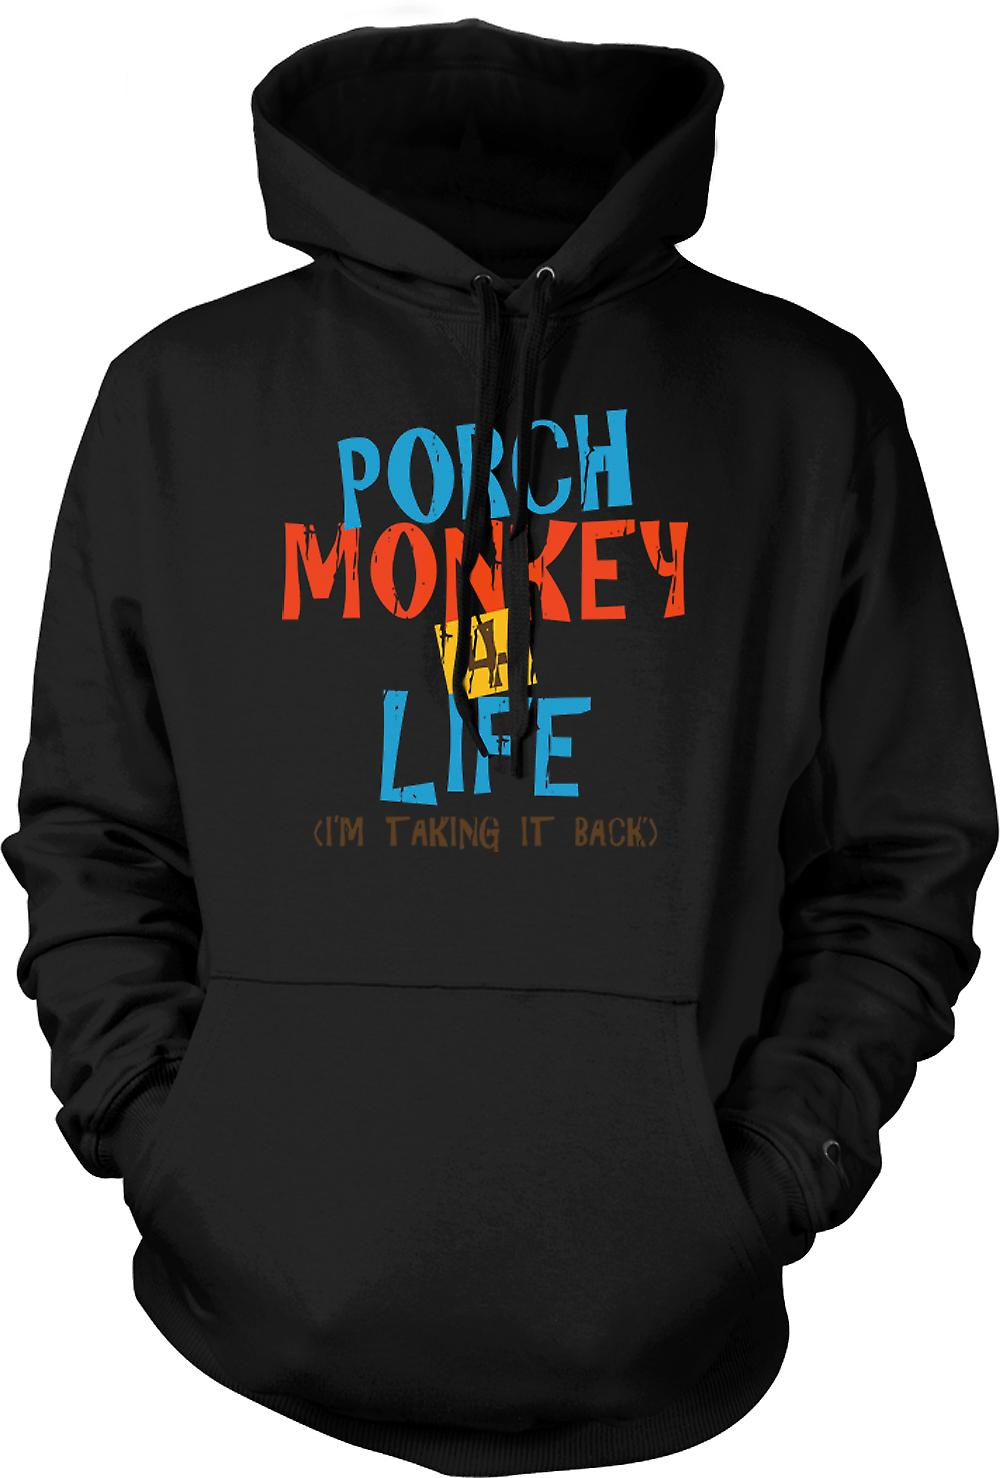 Mens Hoodie - Porch Monkey 4 Life - Clerks Inspired